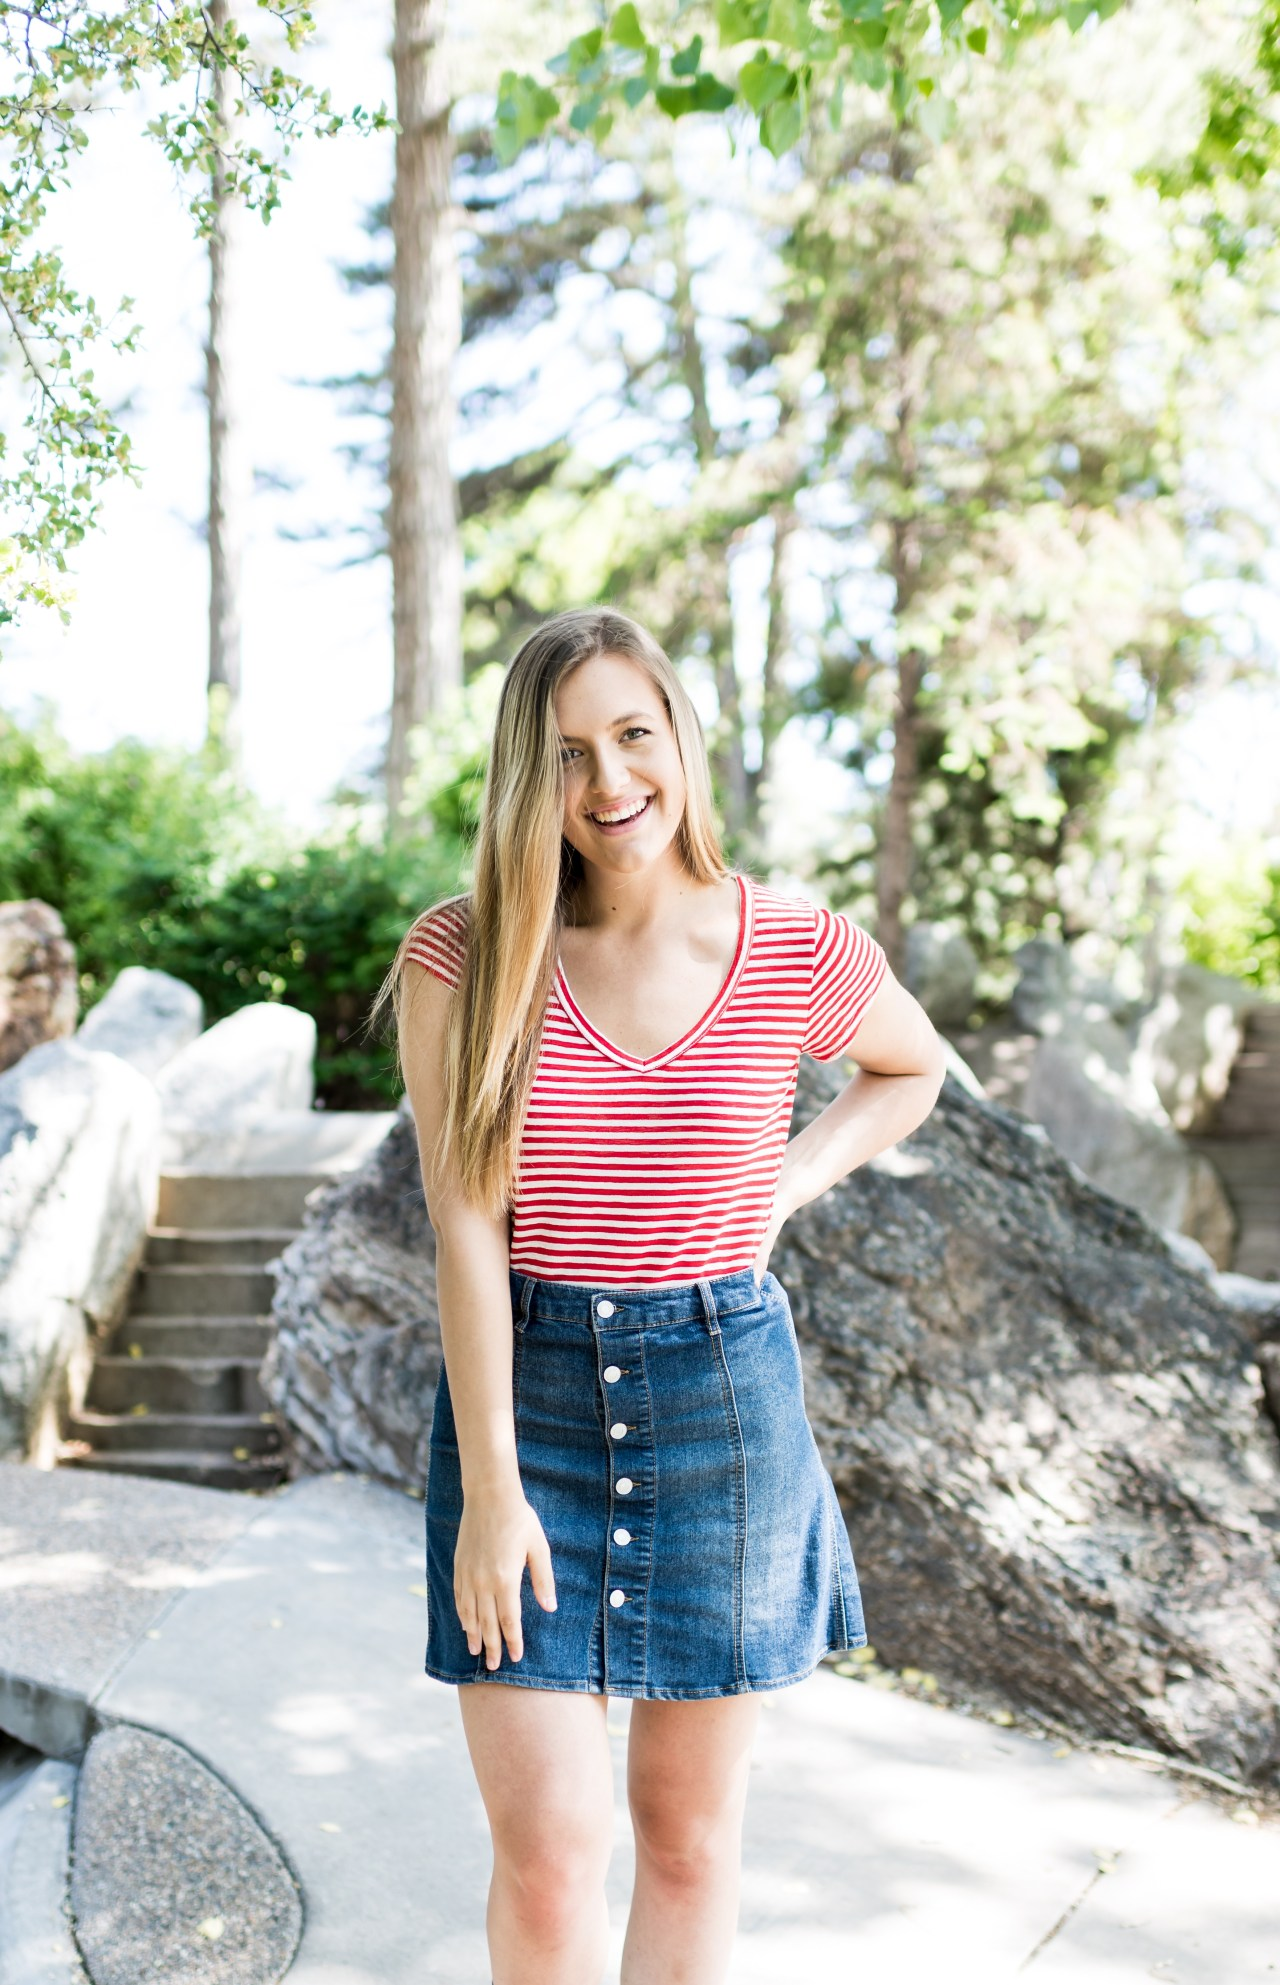 unique things to do on the 4th of july outfit